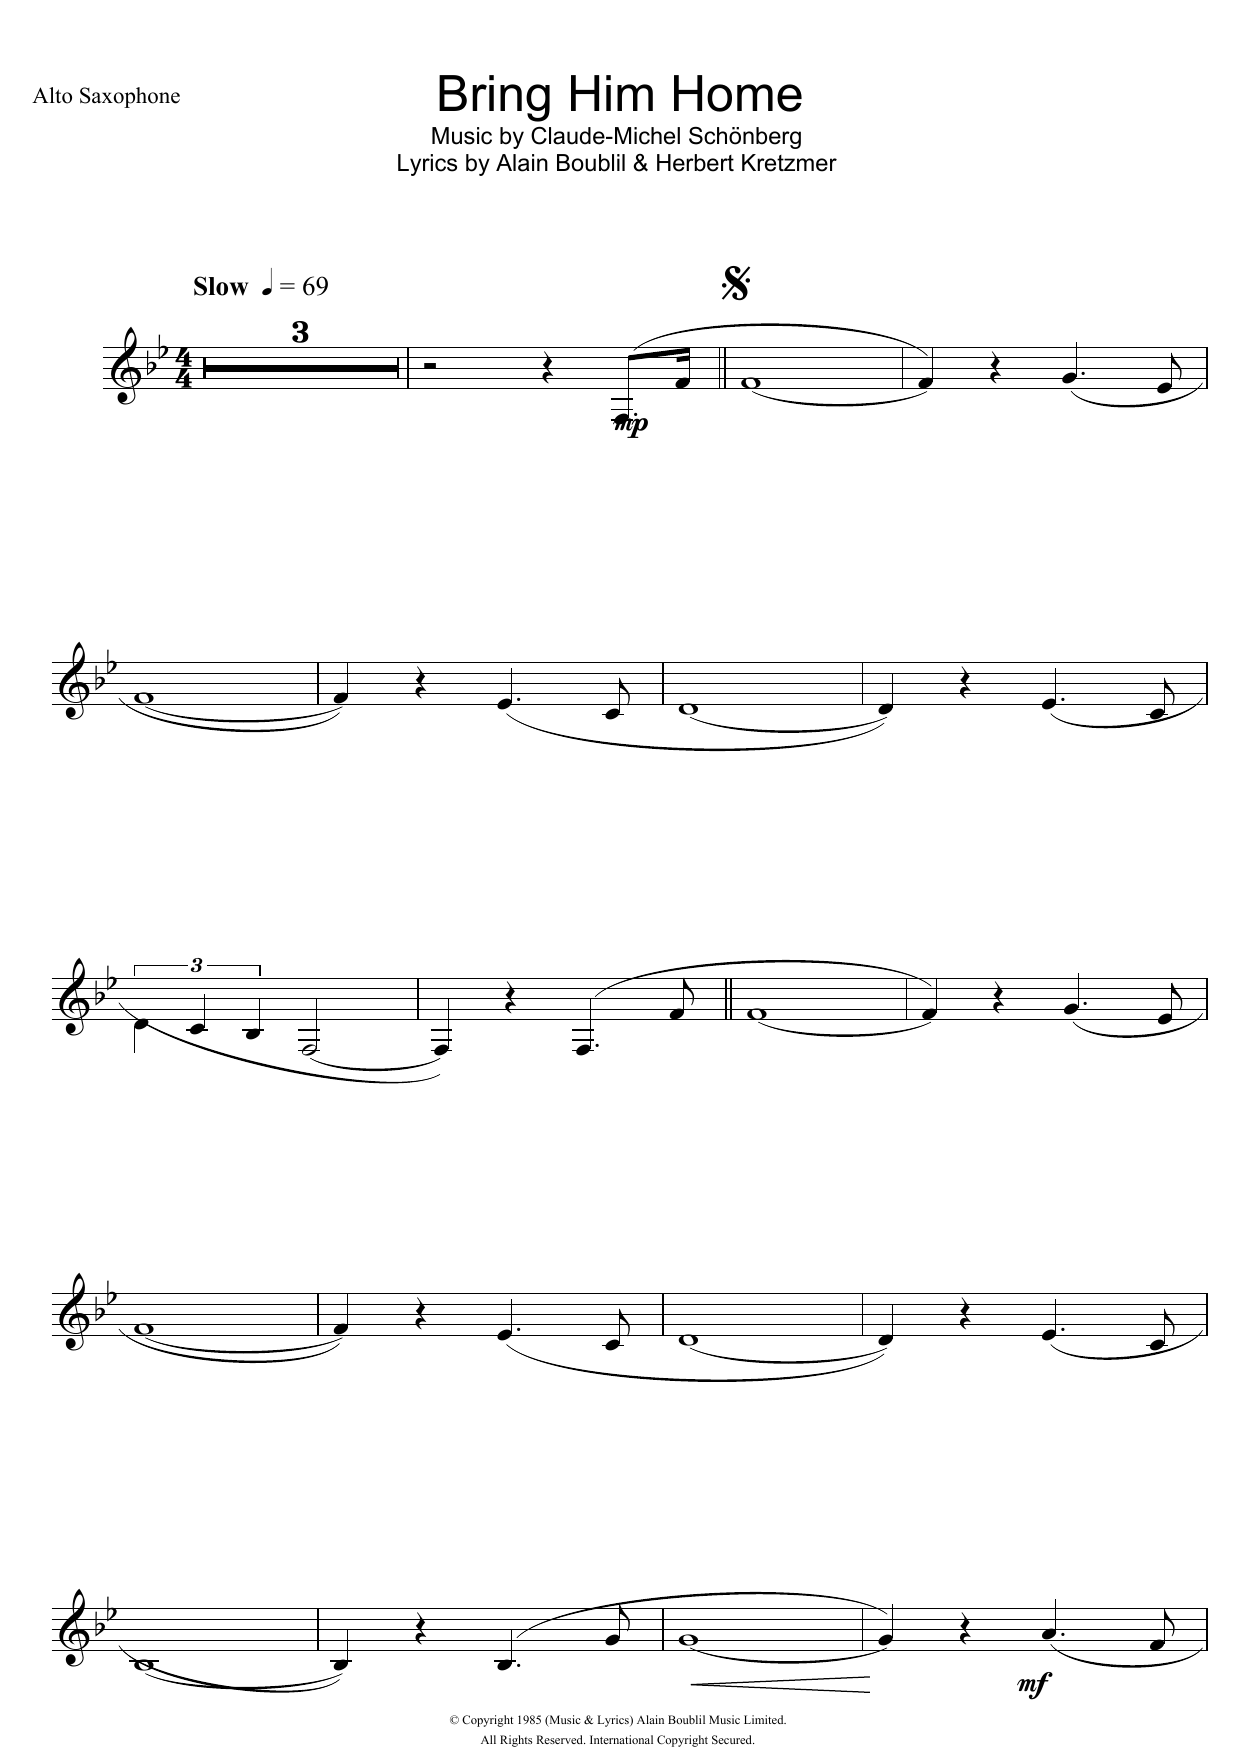 Bring Him Home (from Les Miserables) by Boublil and Schonberg Alto Sax Solo  Digital Sheet Music